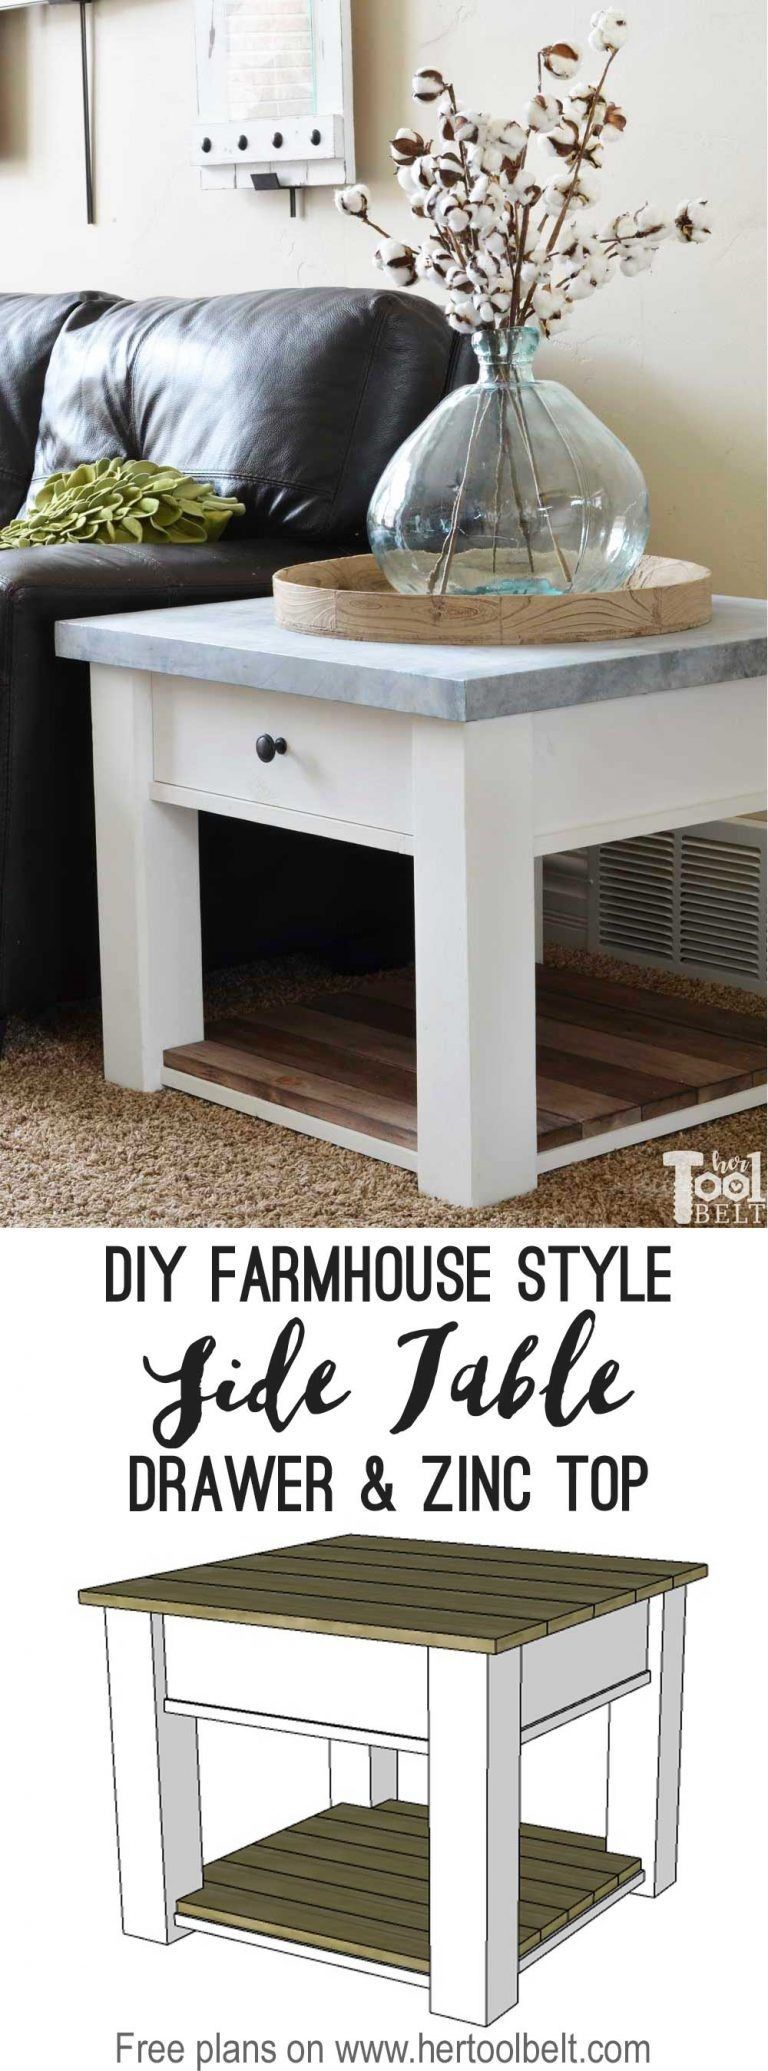 outdoor side table plans diy pallet furniture end new wicker coffee unique accent reclaimed wooden trestle cloth cabinet hardware extension industrial target curtain rods nautical